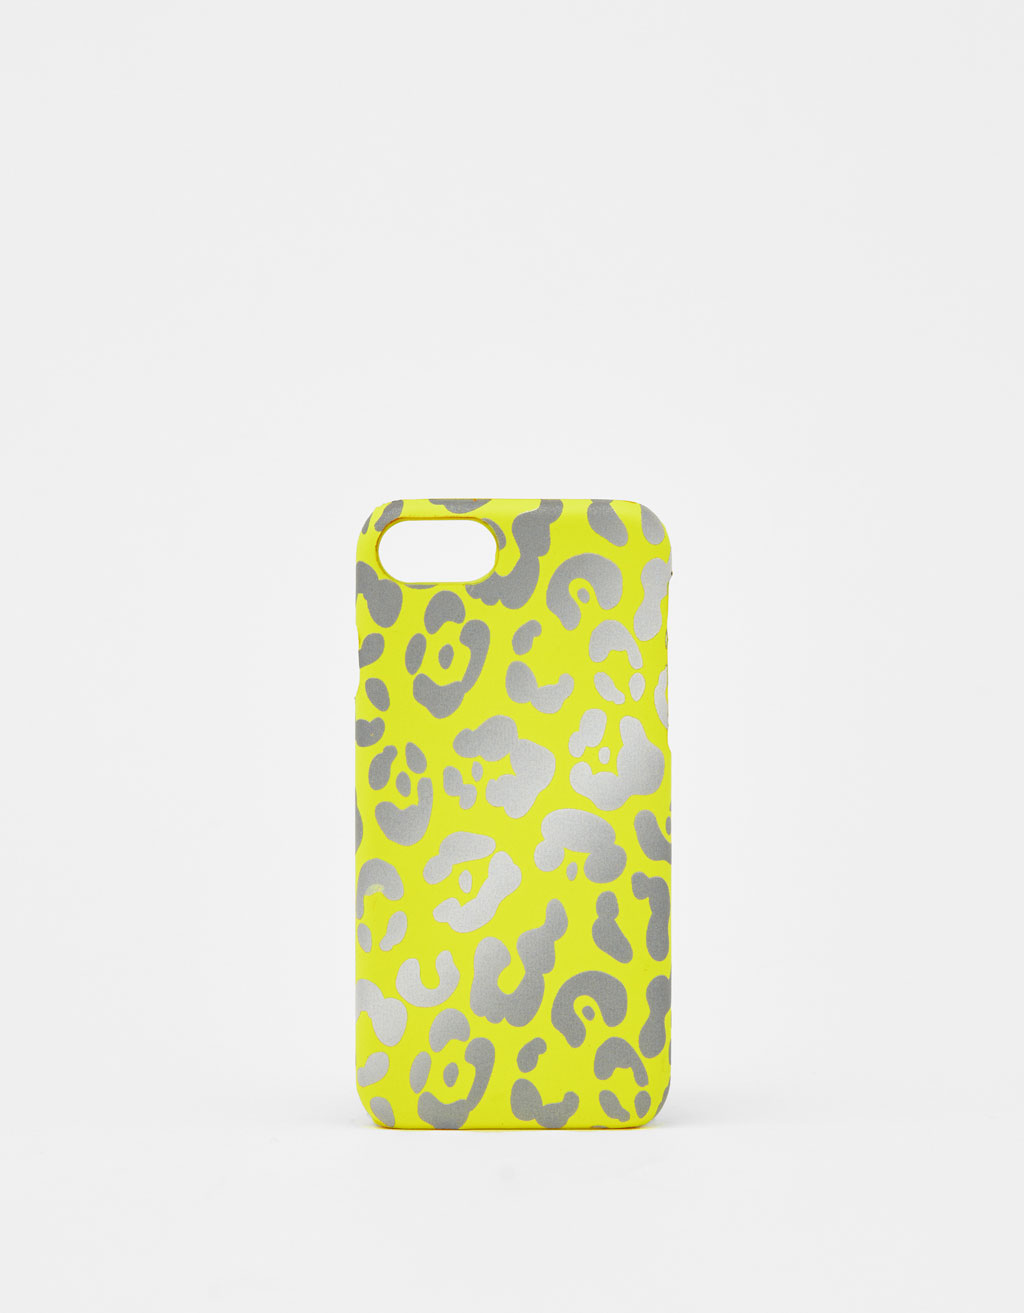 Carcassa lleopard reflectora iPhone 6/6S/7/8